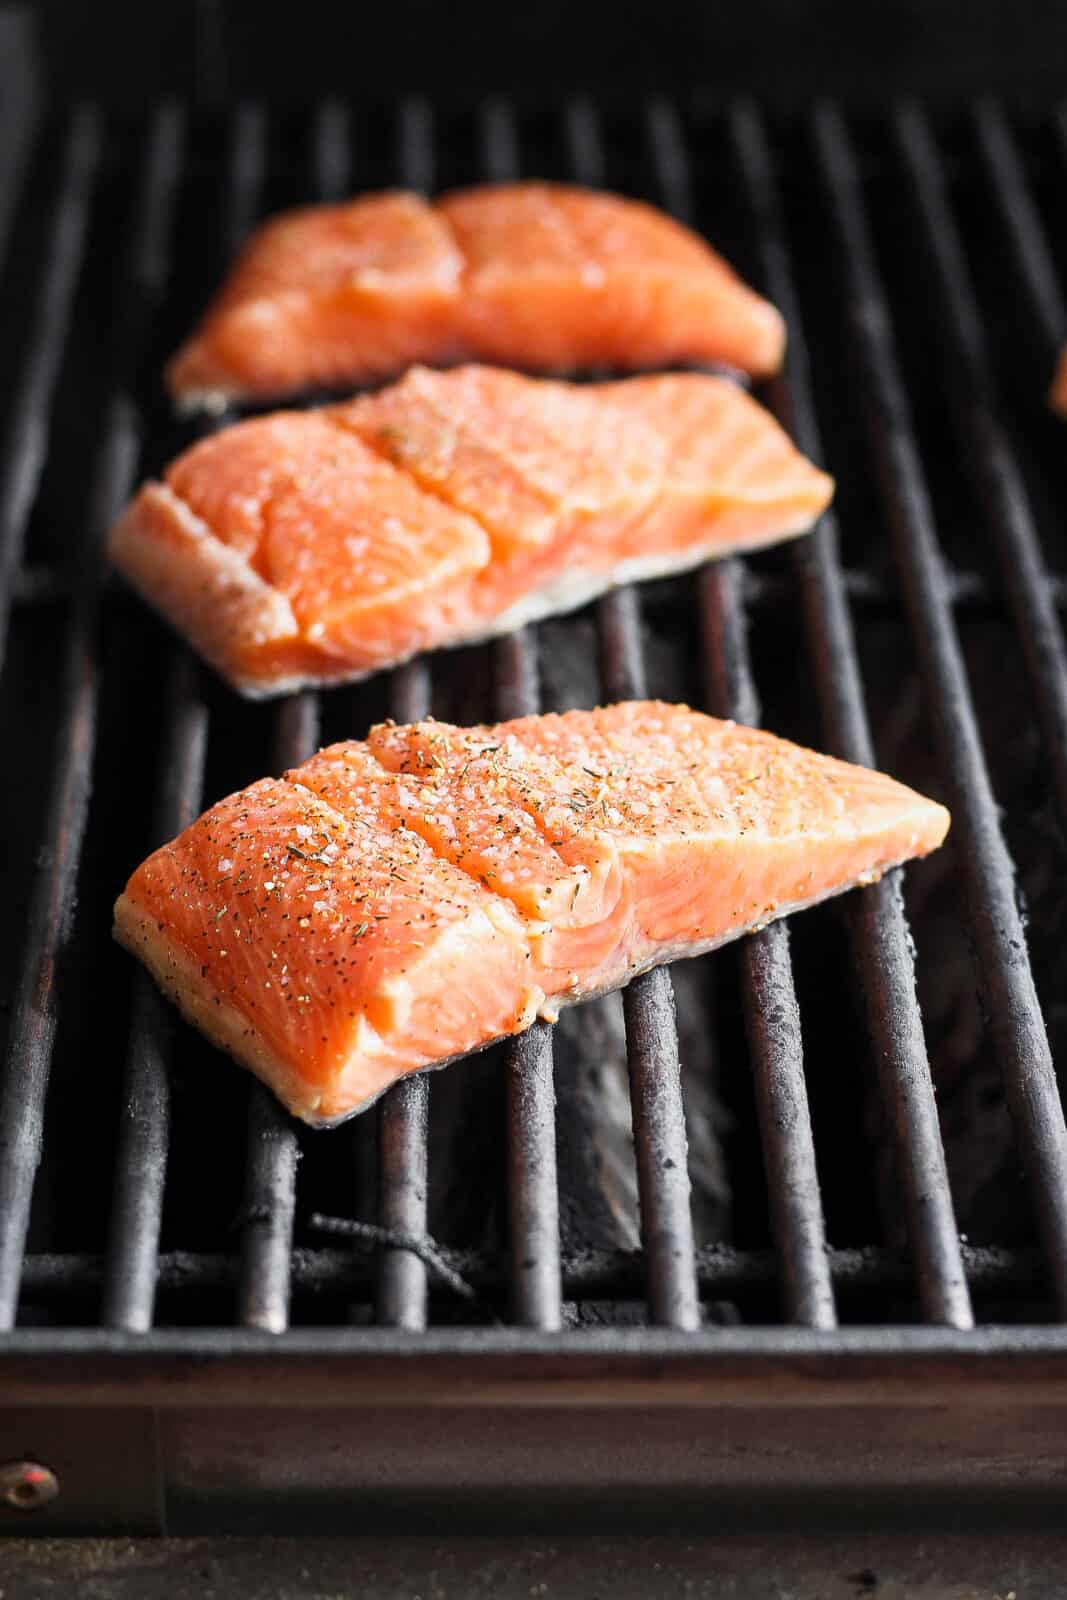 Salmon fillets on the grill with salmon seasoning on top.